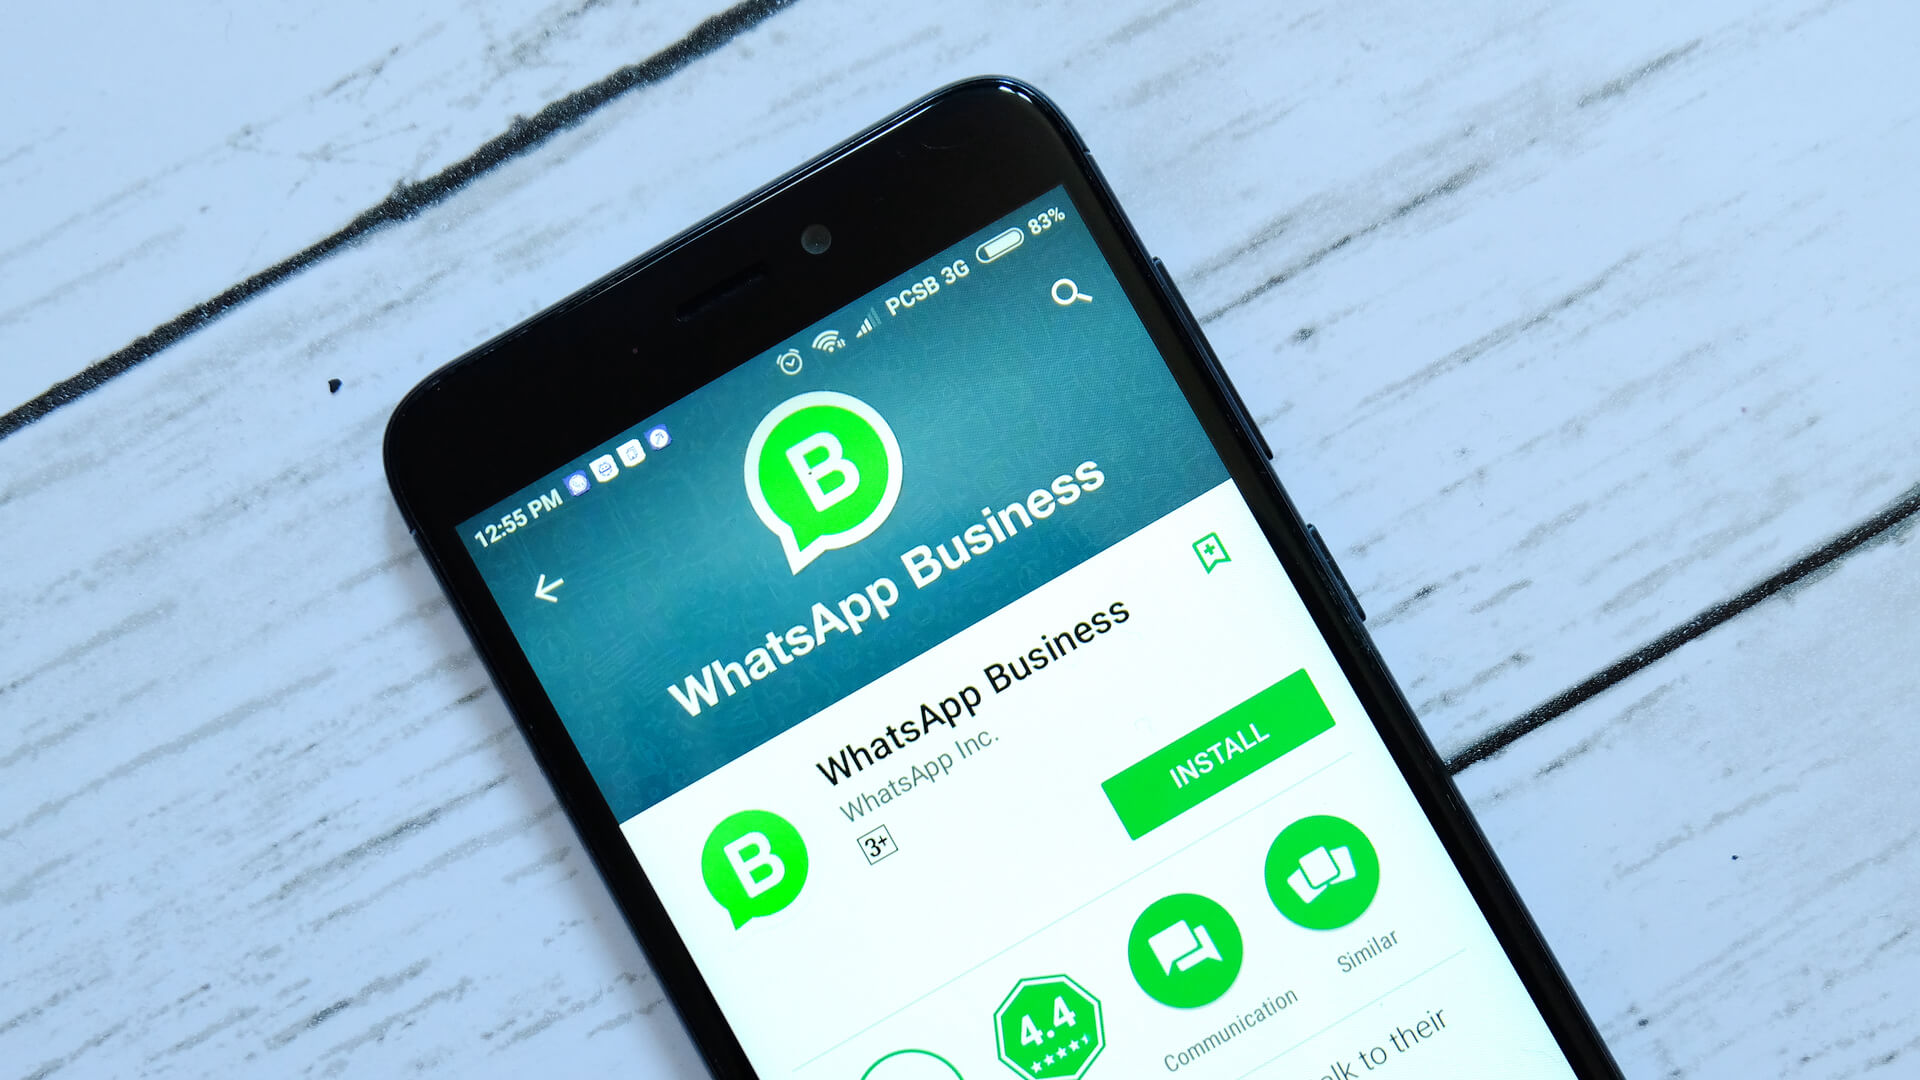 Technicalities of WhatsApp business for beginners